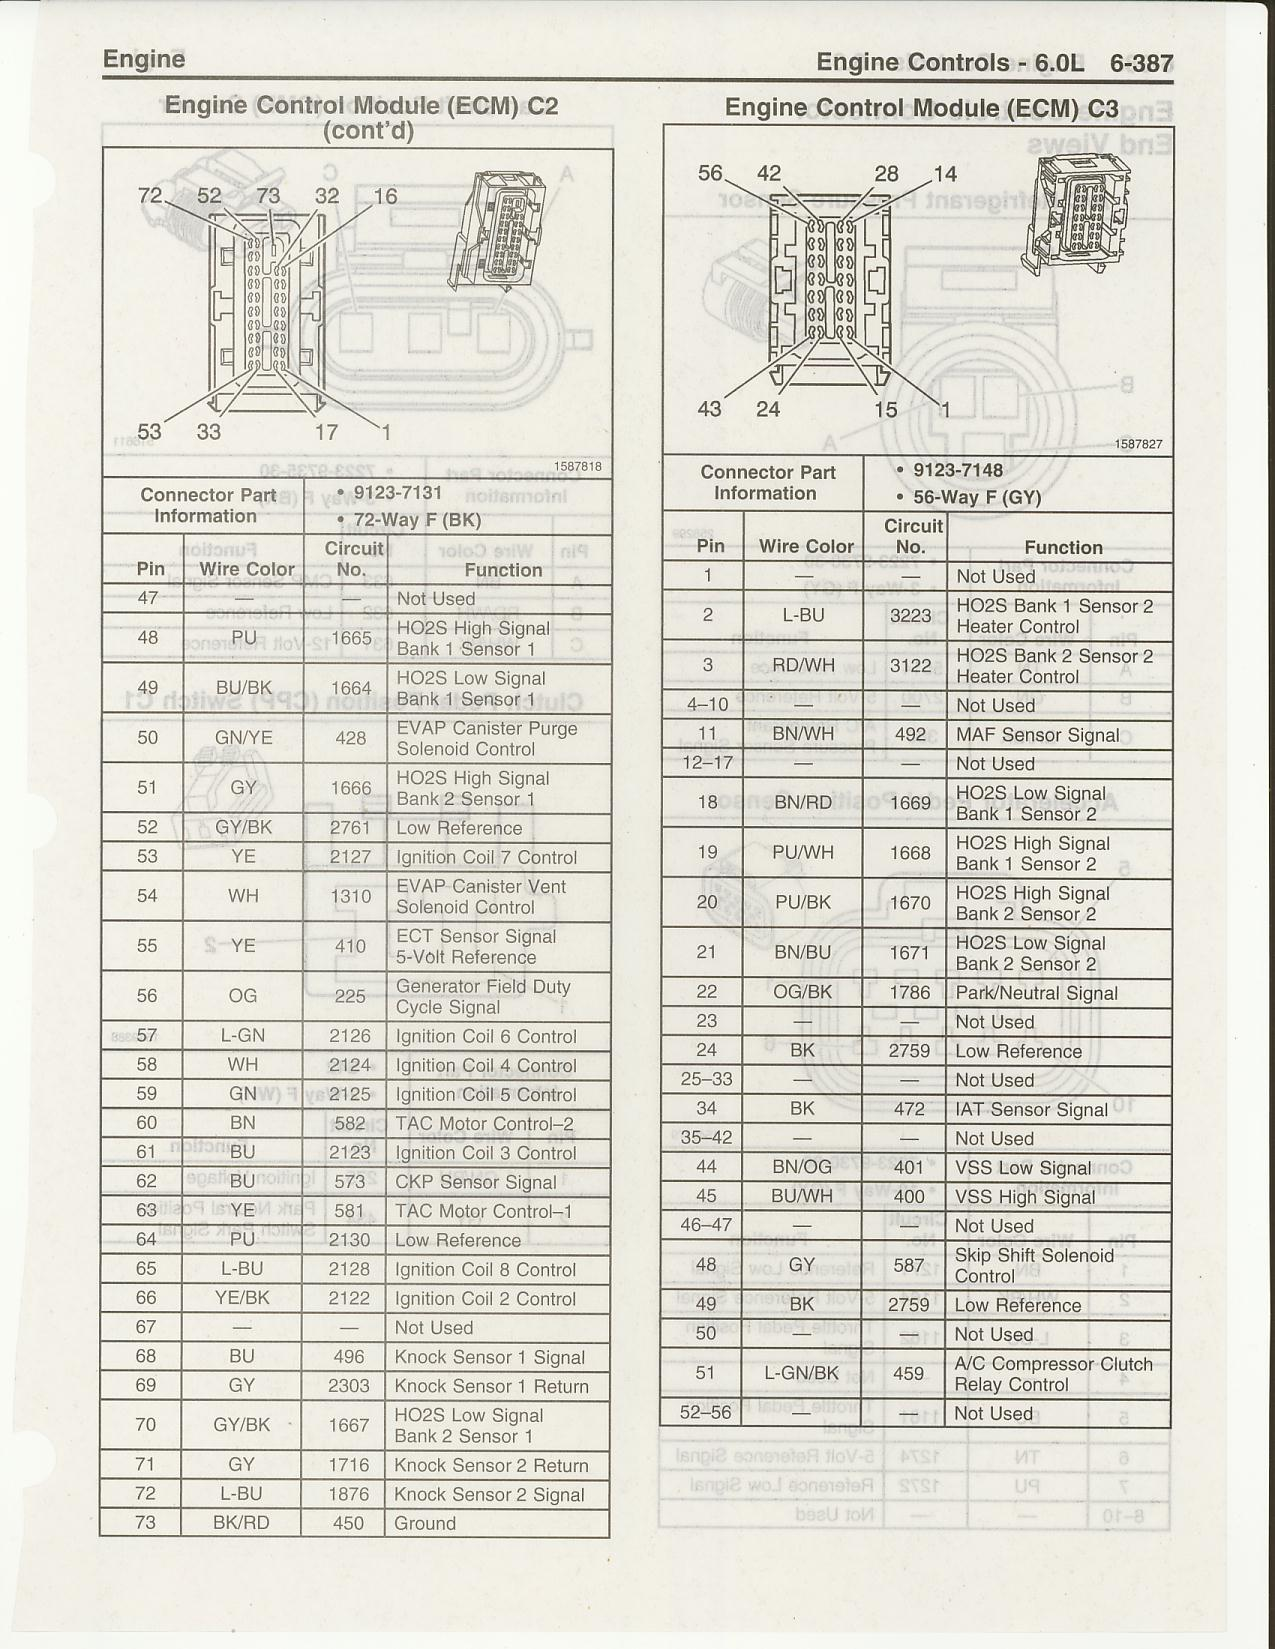 Pinouts And Wiring Diagrams - Page 5 - Ls1tech